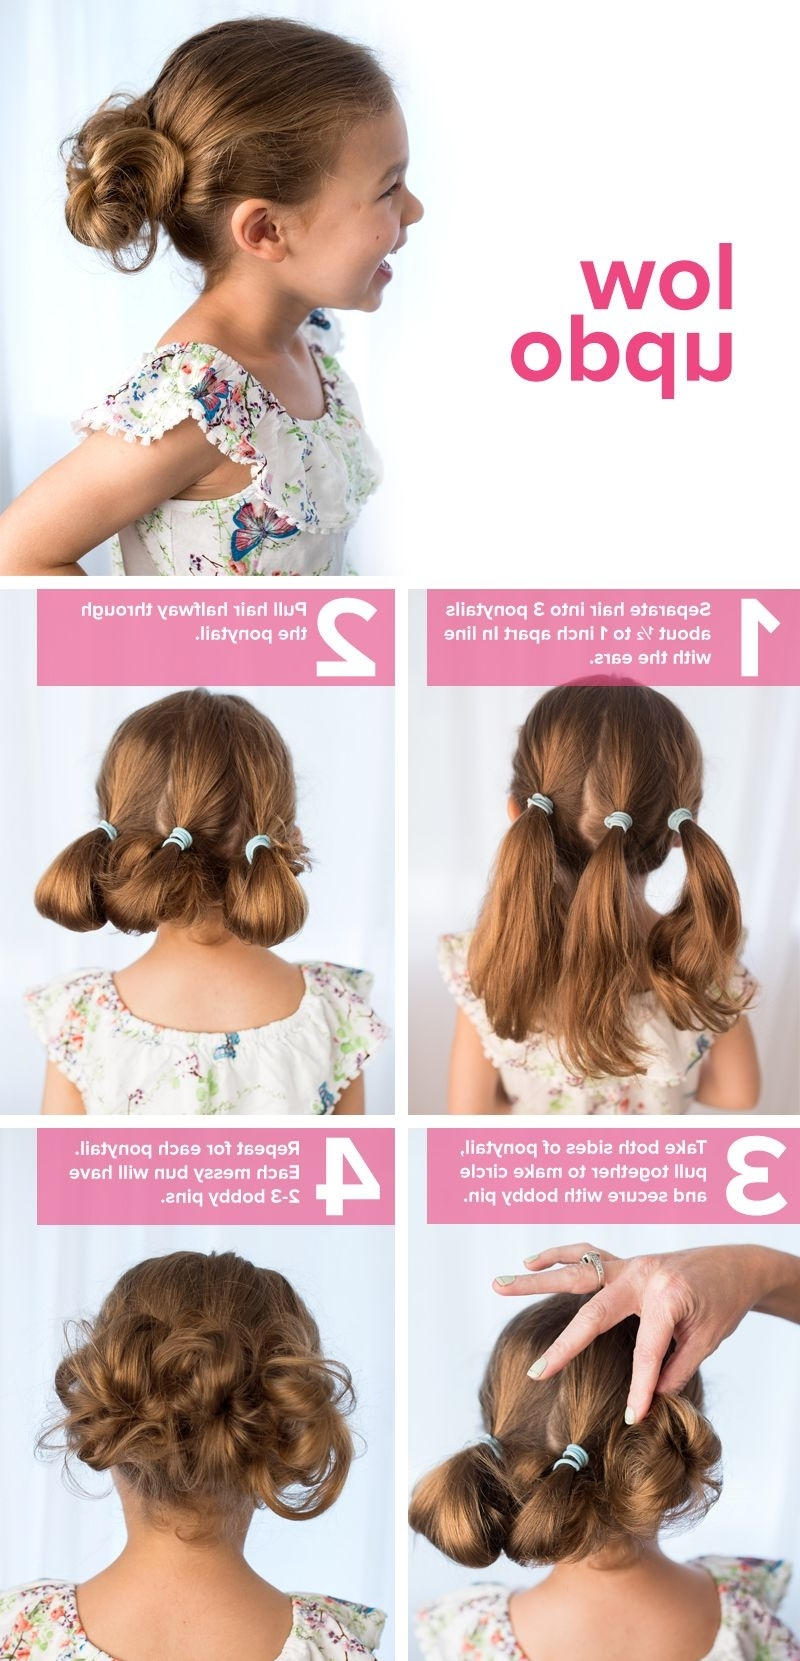 5 Fast, Easy, Cute Hairstyles For Girls | Low Updo, Updo And Kids S Within Easy Updos For Extra Long Hair (View 6 of 15)